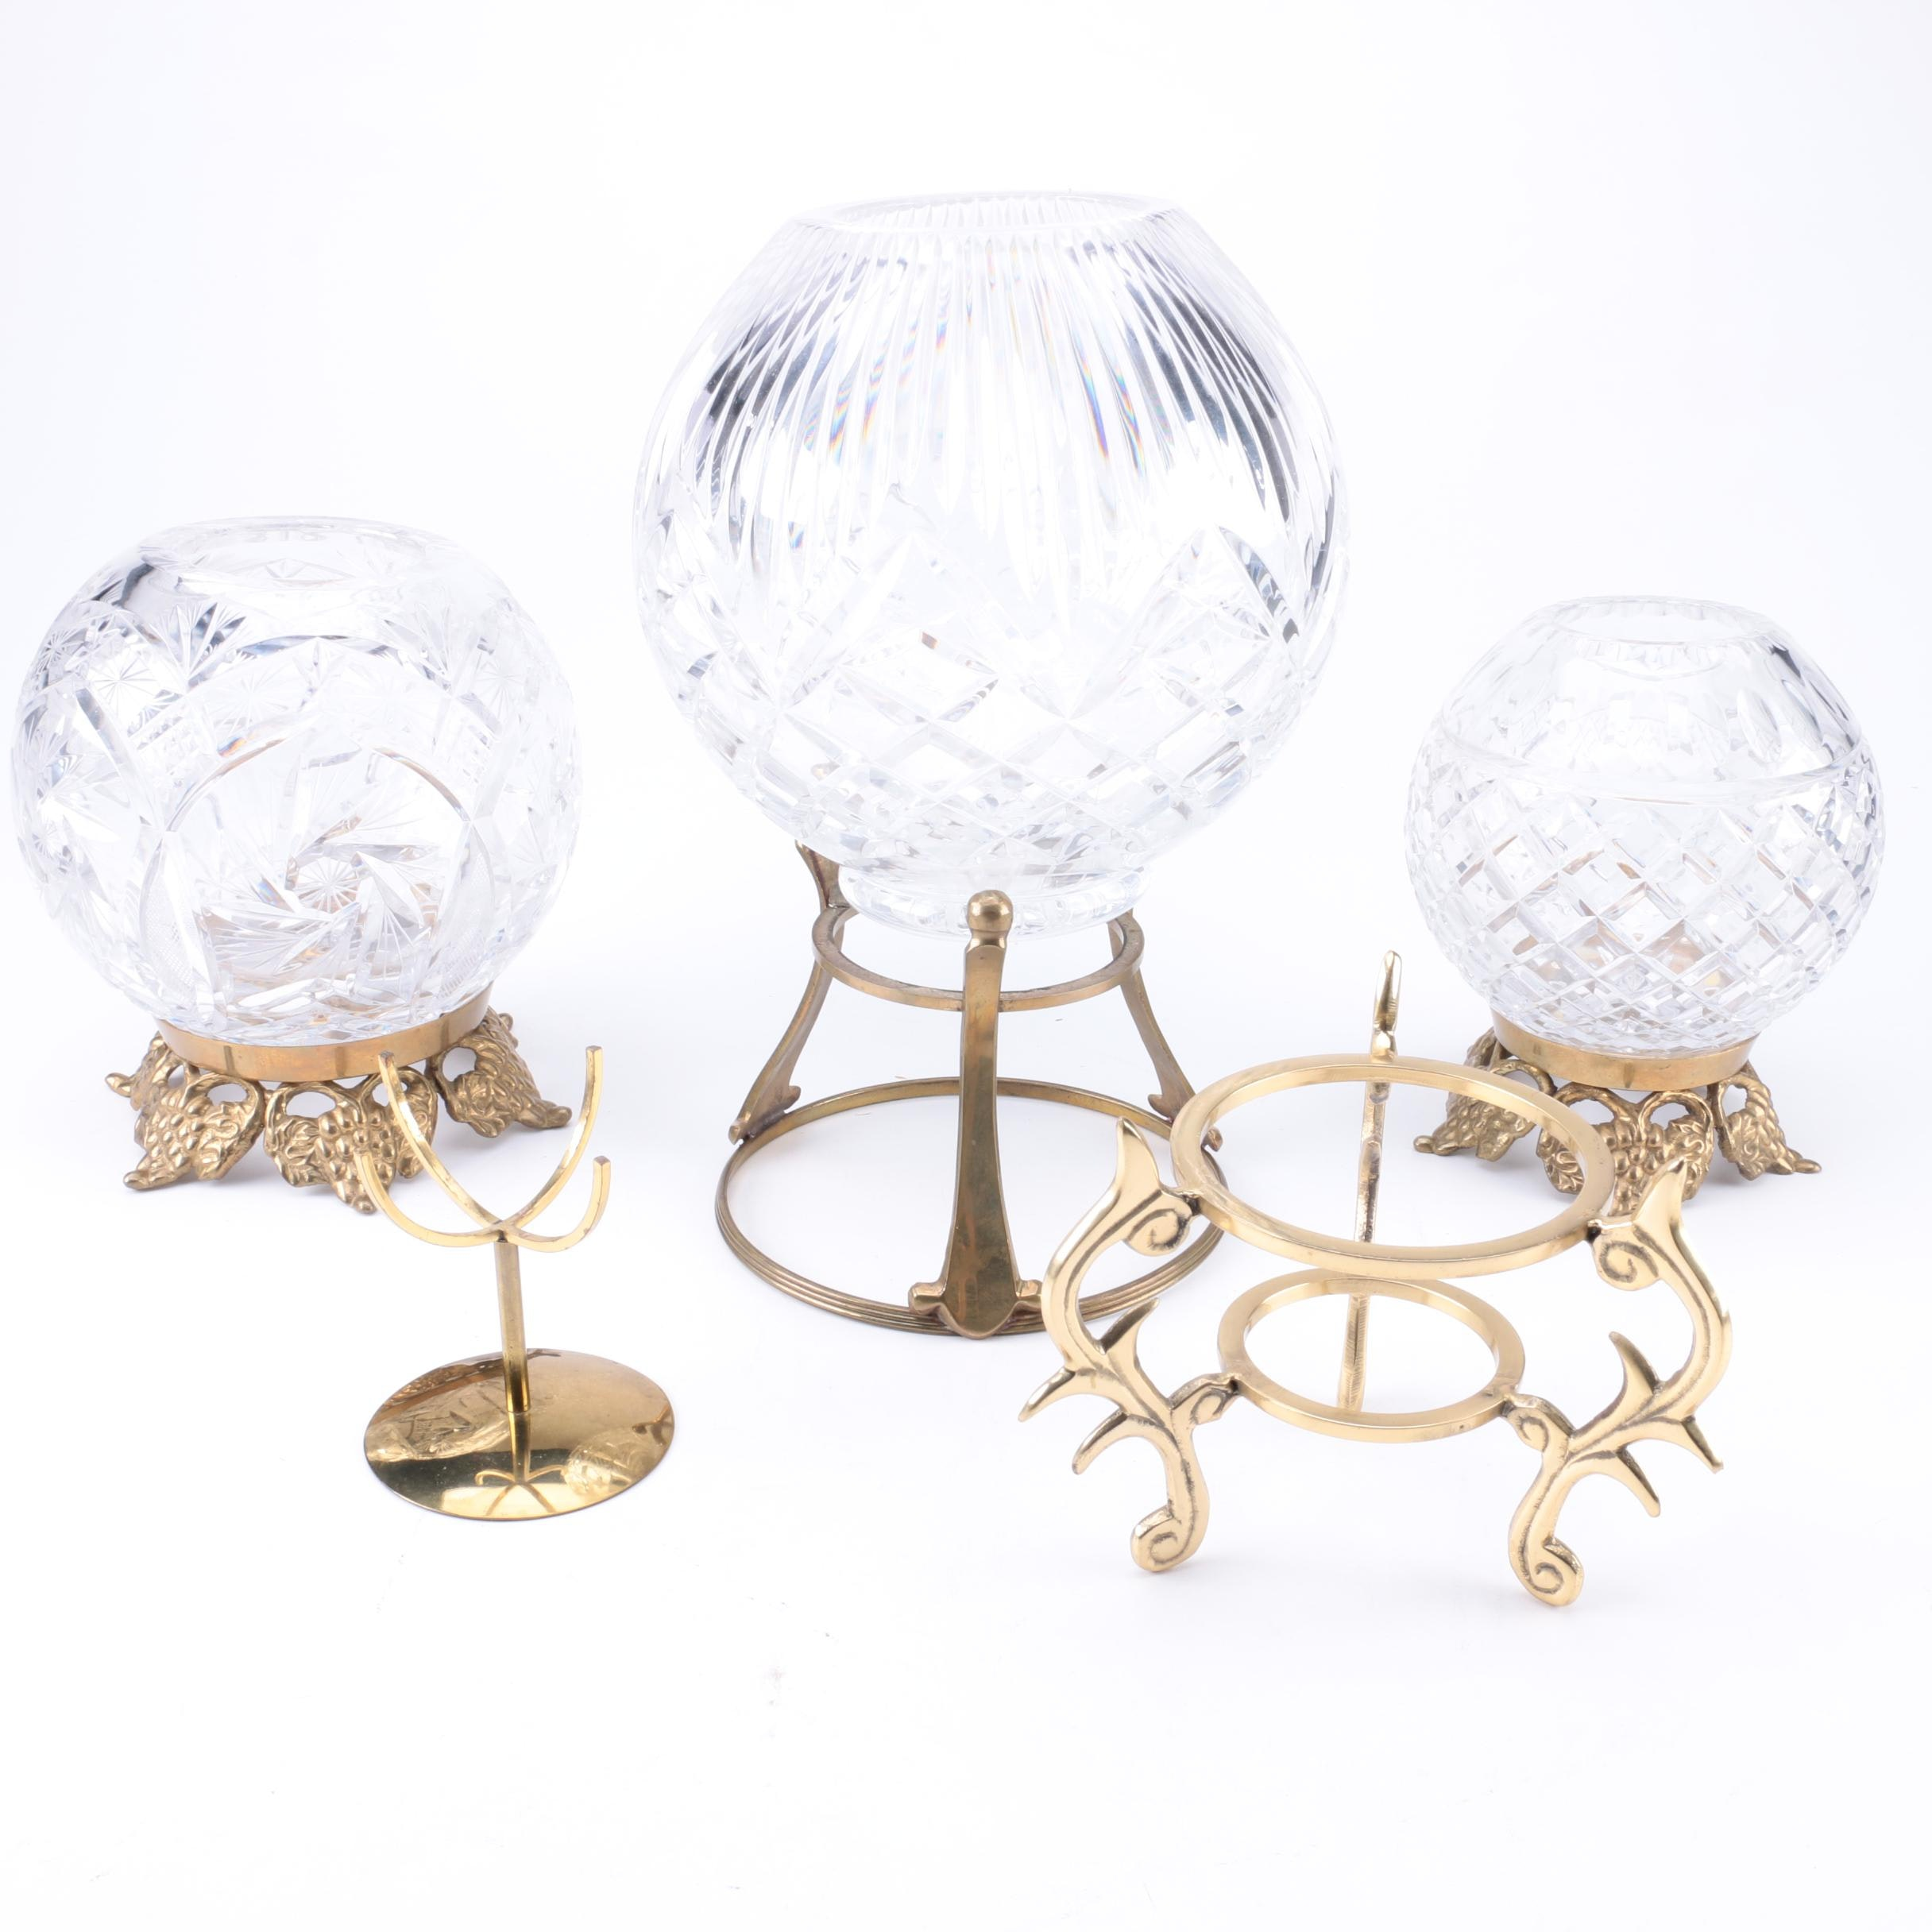 Decorative Cut Crystal Bowls and Brass Stands